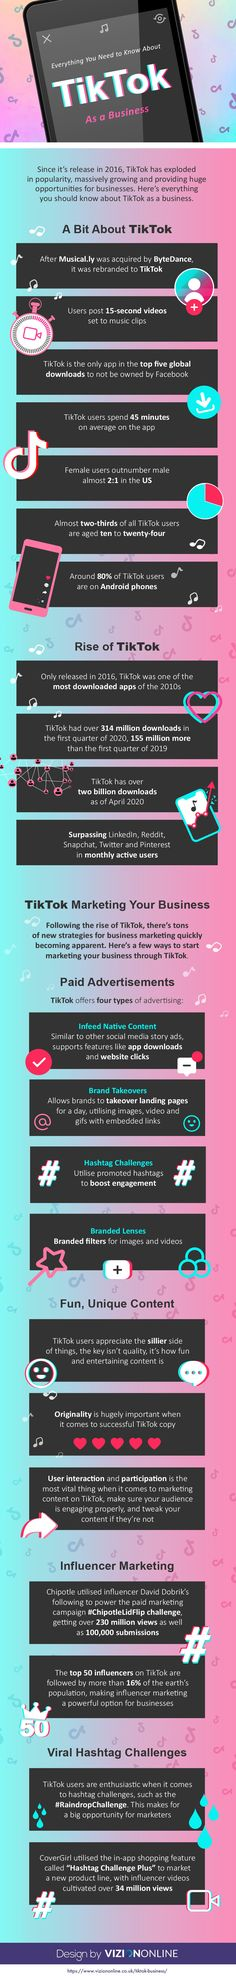 Everything You Need to Know About TikTok as a Business infographic Marketing Approach, Content Marketing, Online Marketing, Social Media Marketing, Digital Marketing, Marketing News, Affiliate Marketing, Effective Communication, Influencer Marketing